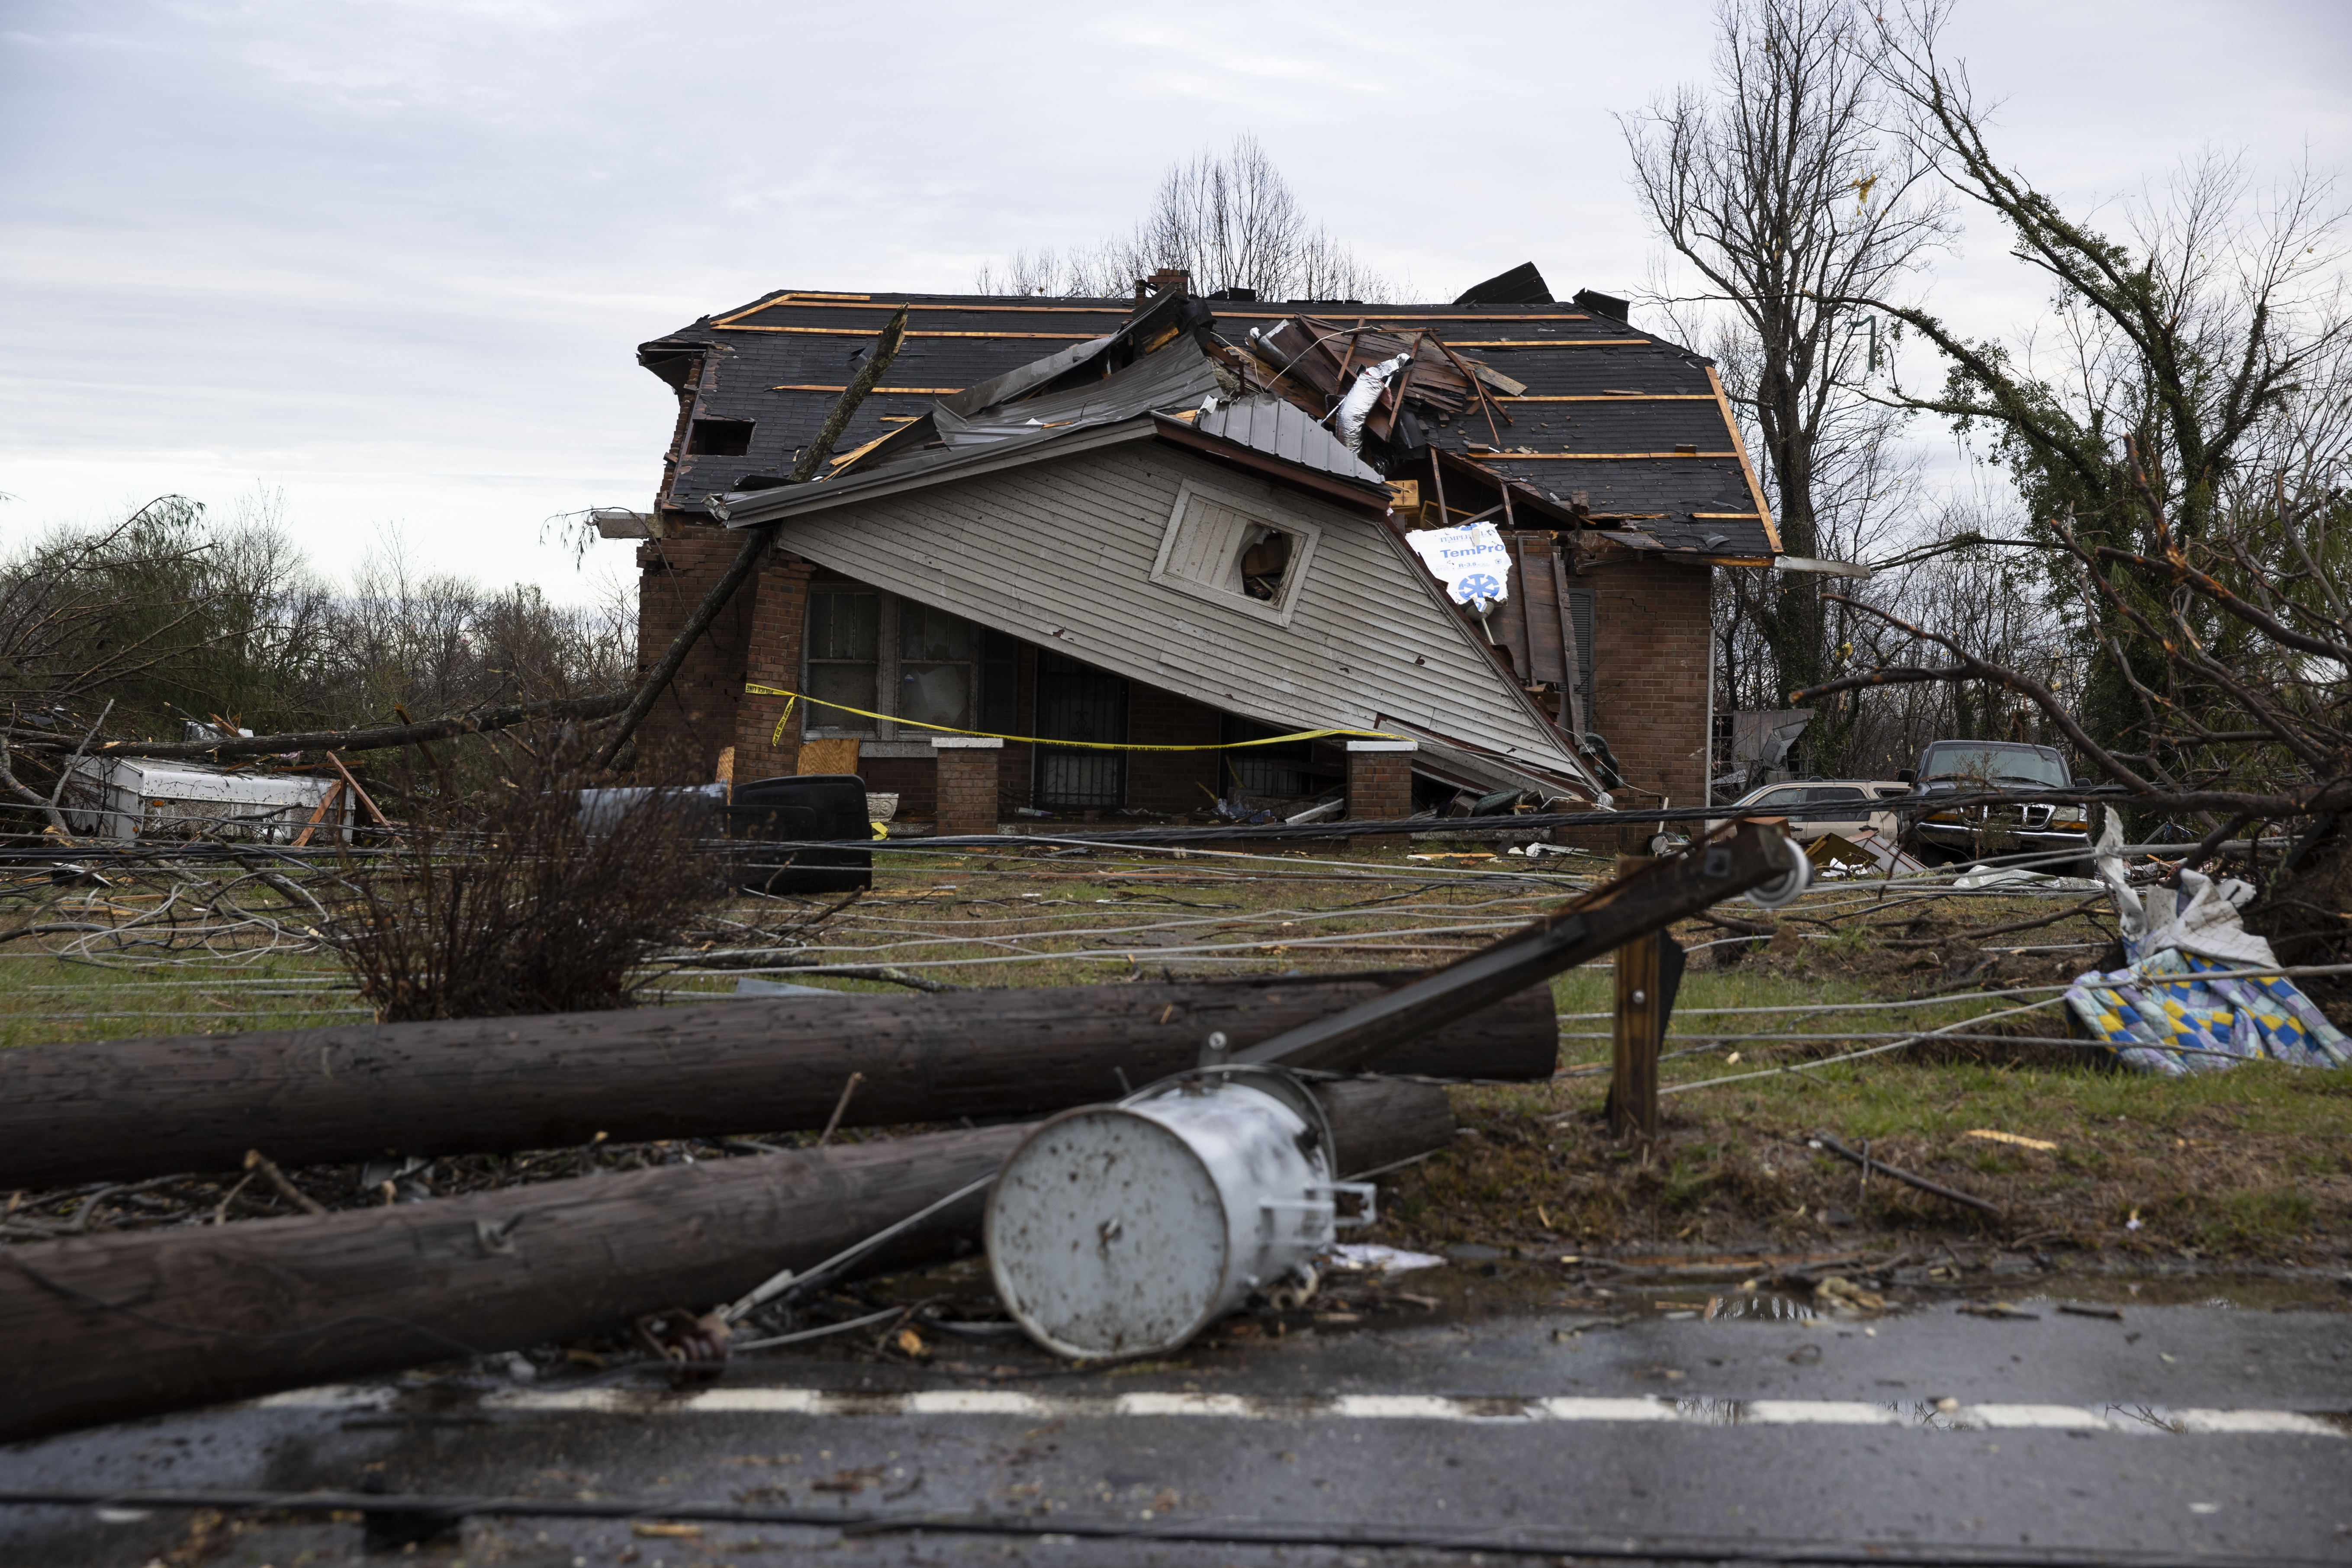 A home is shown destroyed by high winds from one of several tornadoes that tore through the state overnight on March 3, 2020 in Cookeville, Tennessee. (Photo by Brett Carlsen/Getty Images)